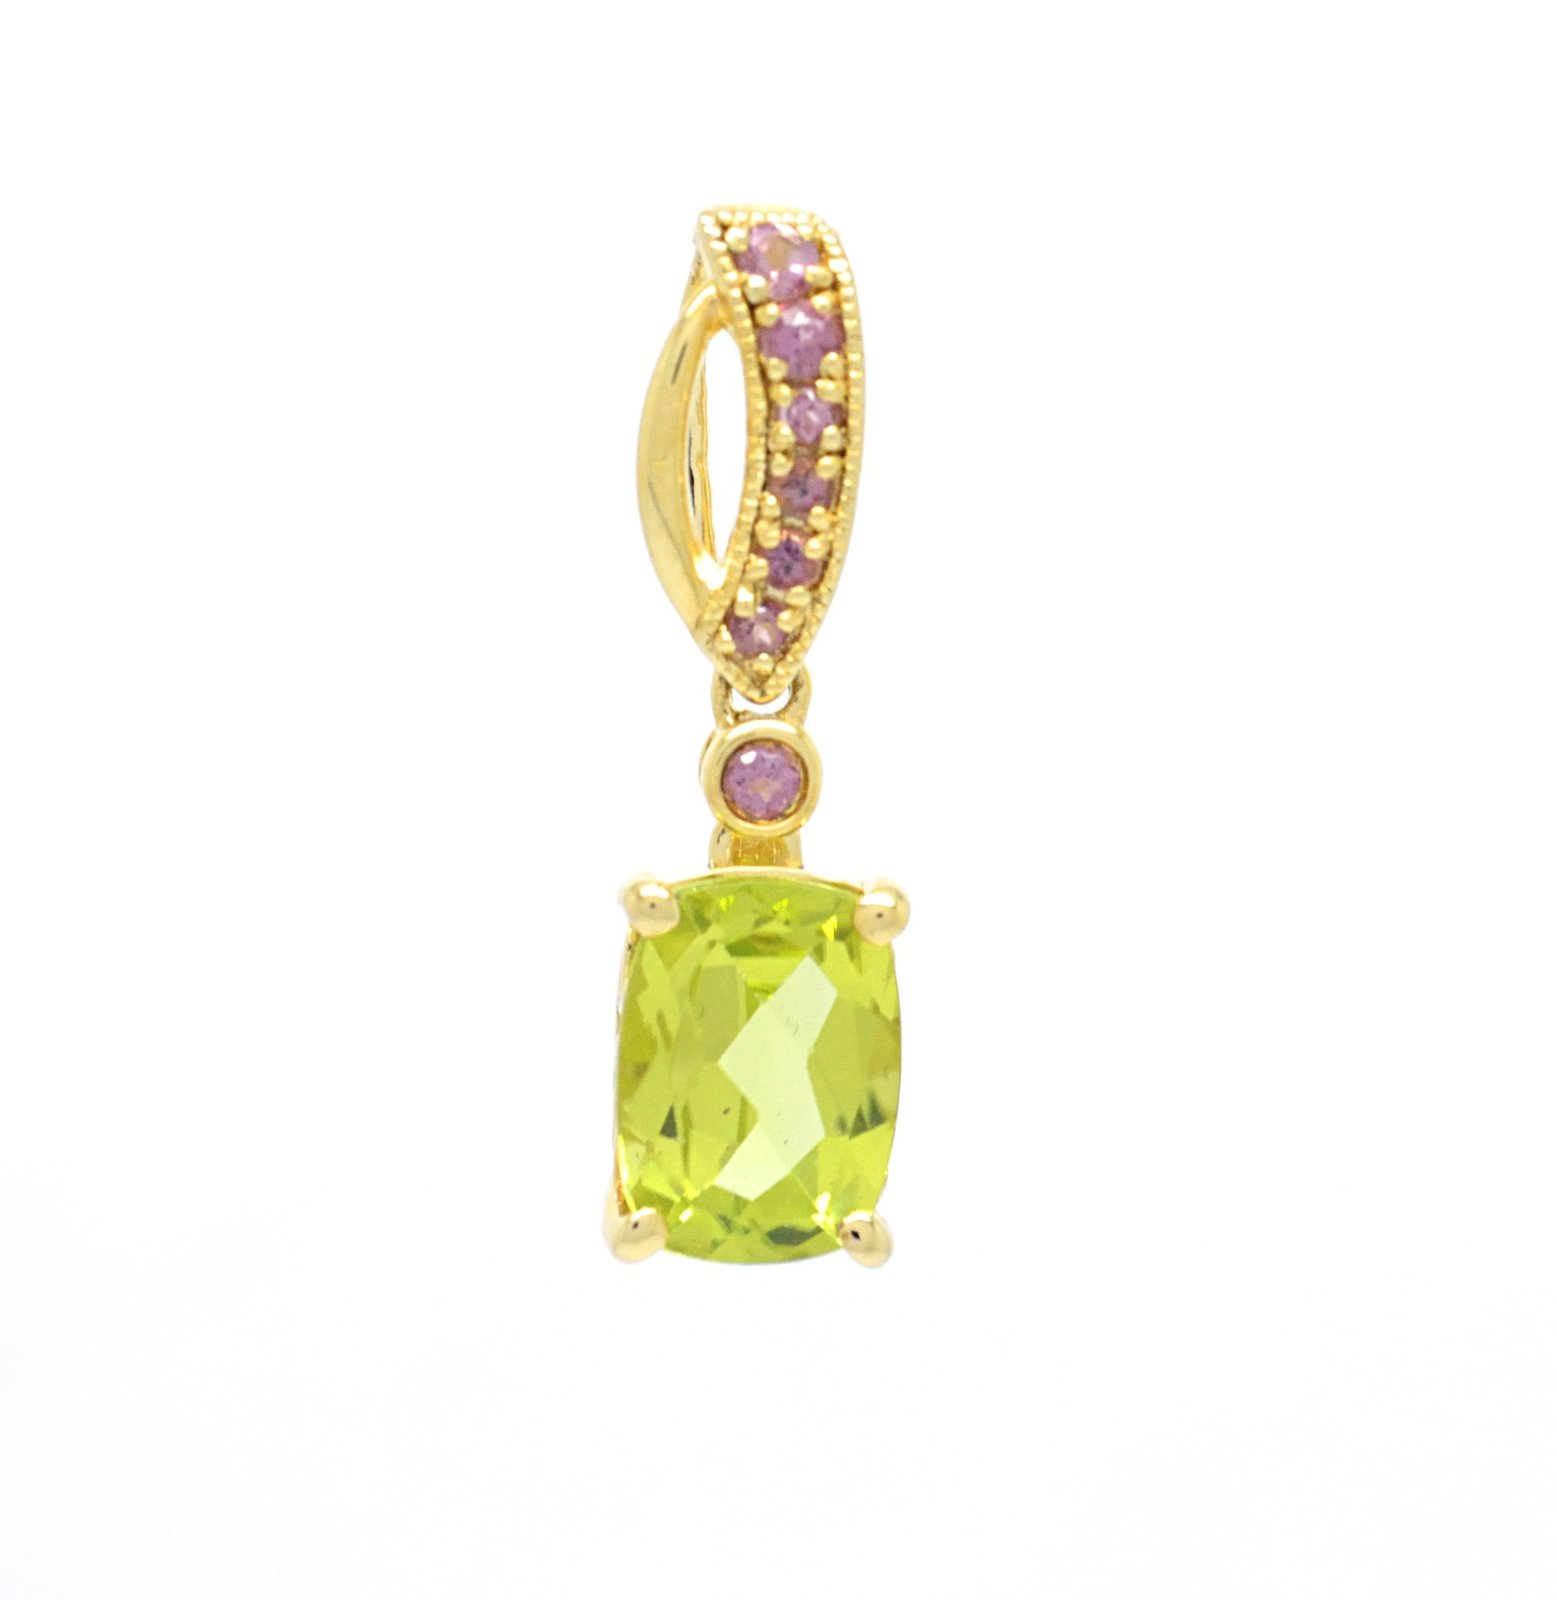 925 Sterling Silver Gold Tone Plated Genuine Peridot and Pink Topaz Pendant with